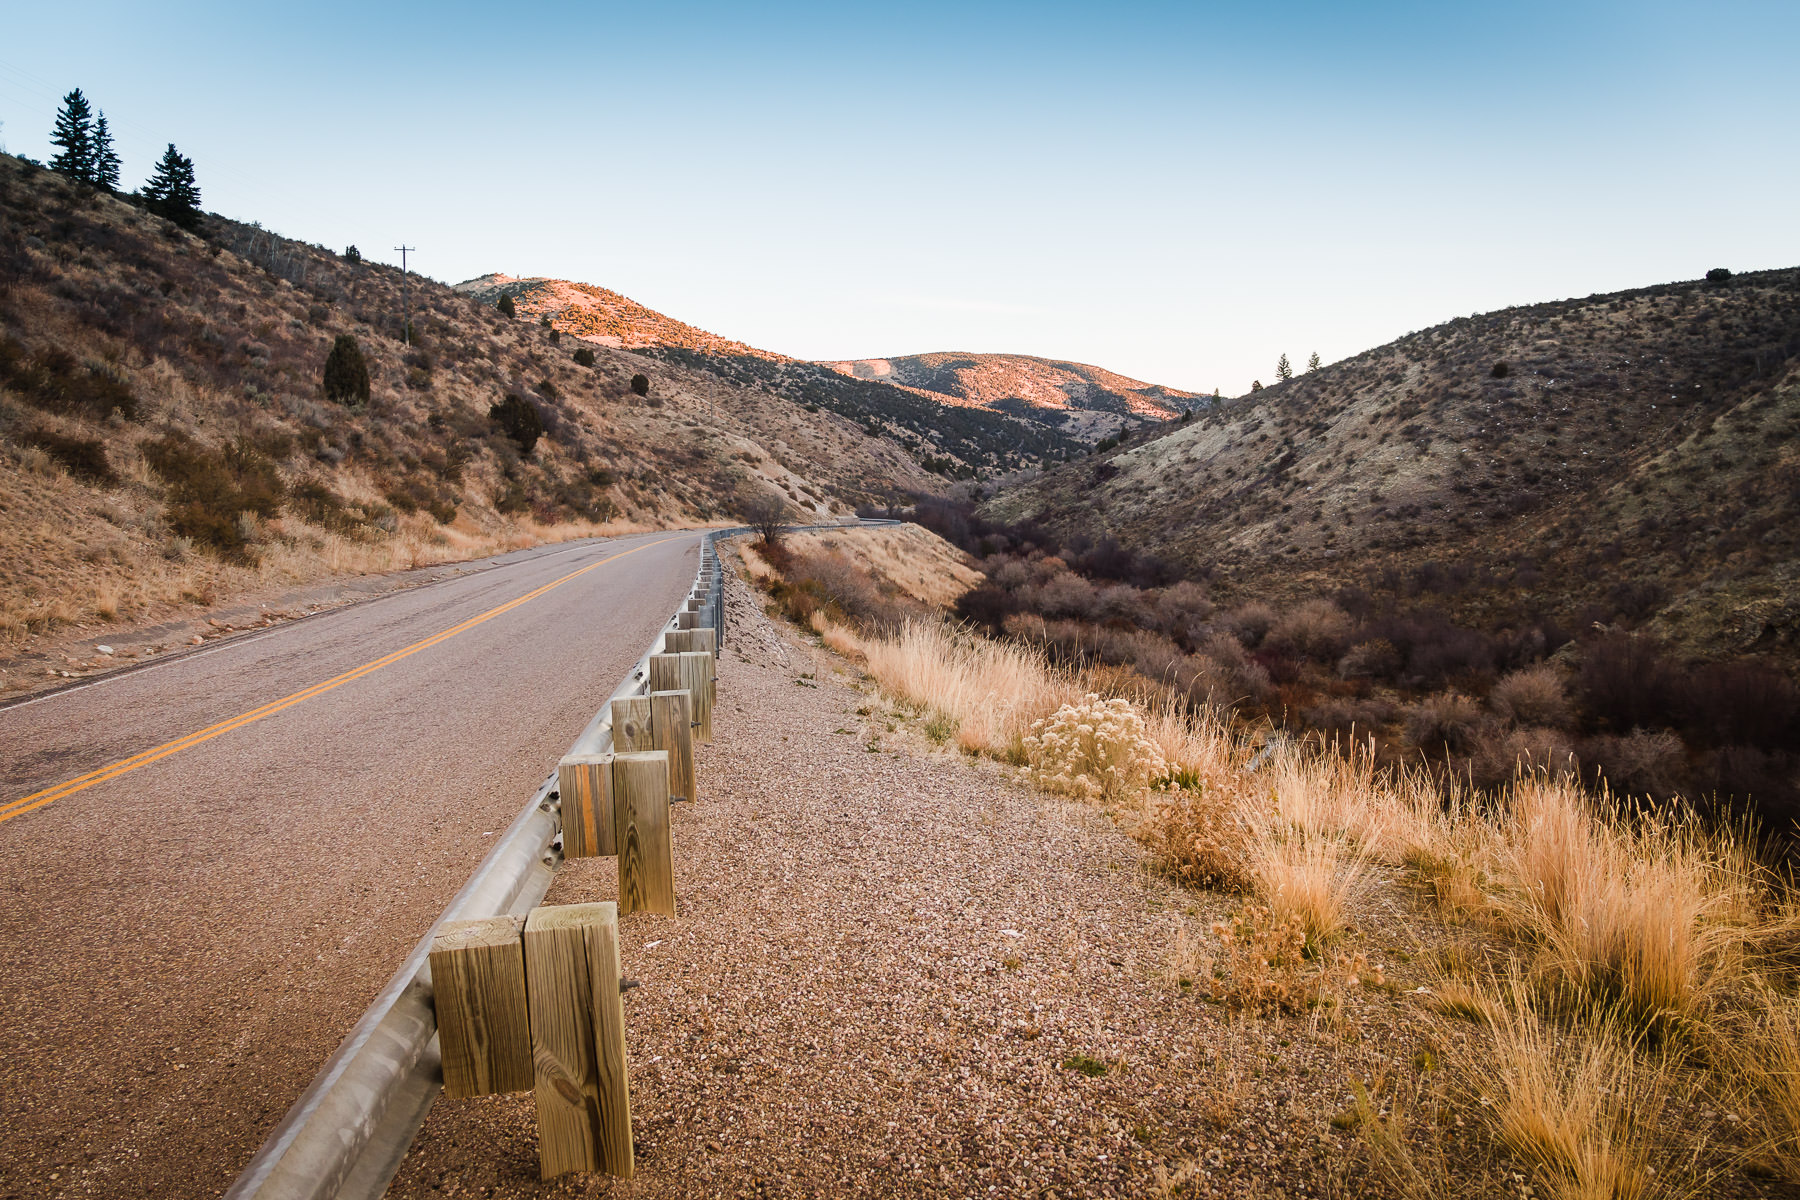 A road winds through the mountainous Cherry Springs Nature Area near Pocatello, Idaho.